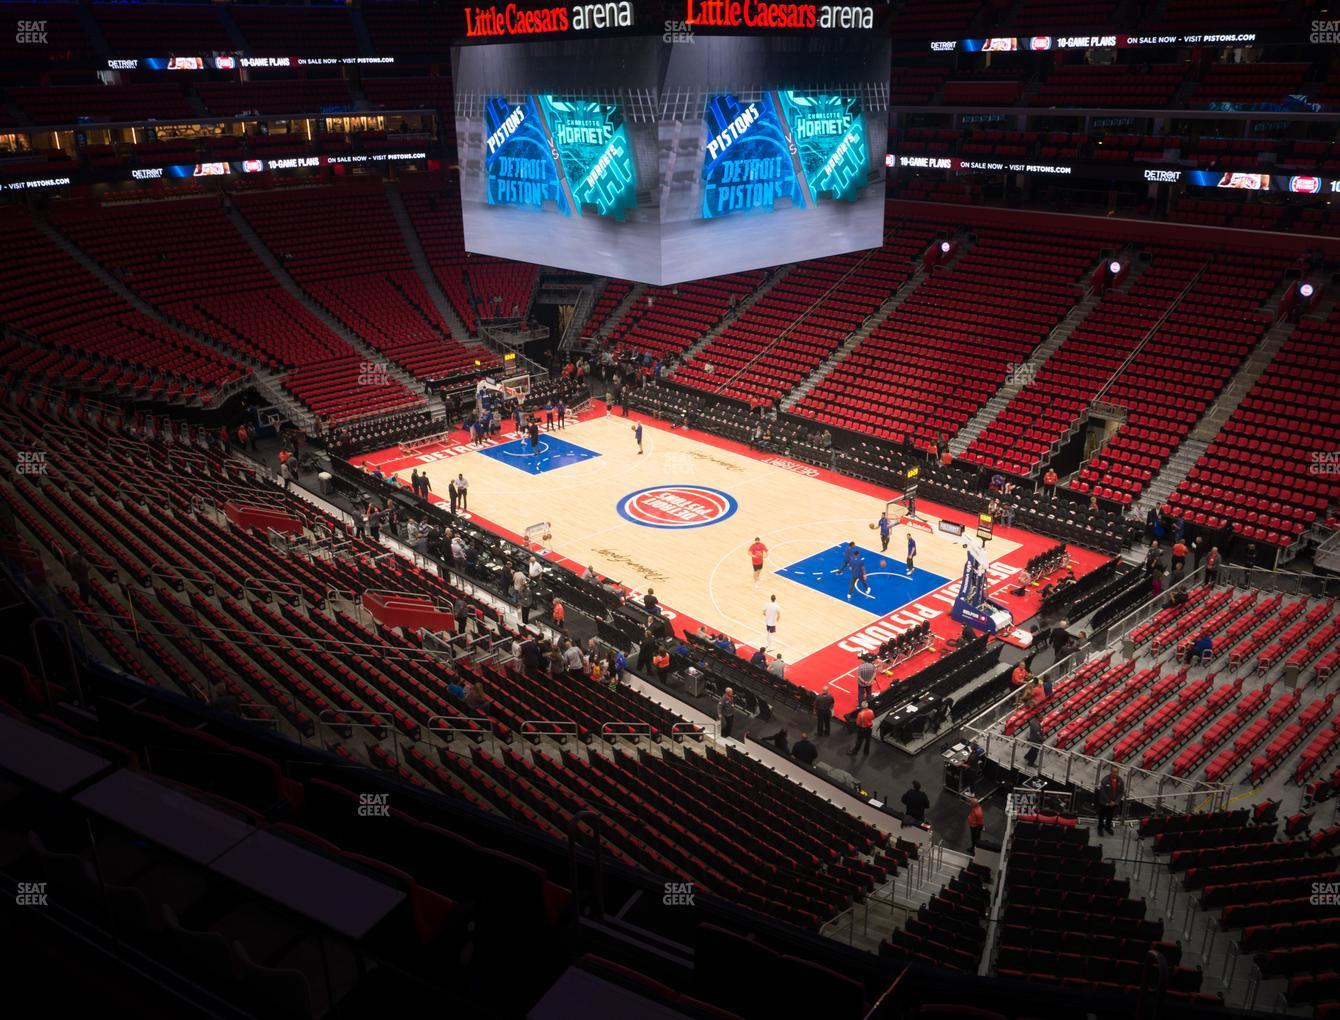 Detroit Pistons at Little Caesars Arena Mezzanine 23 View